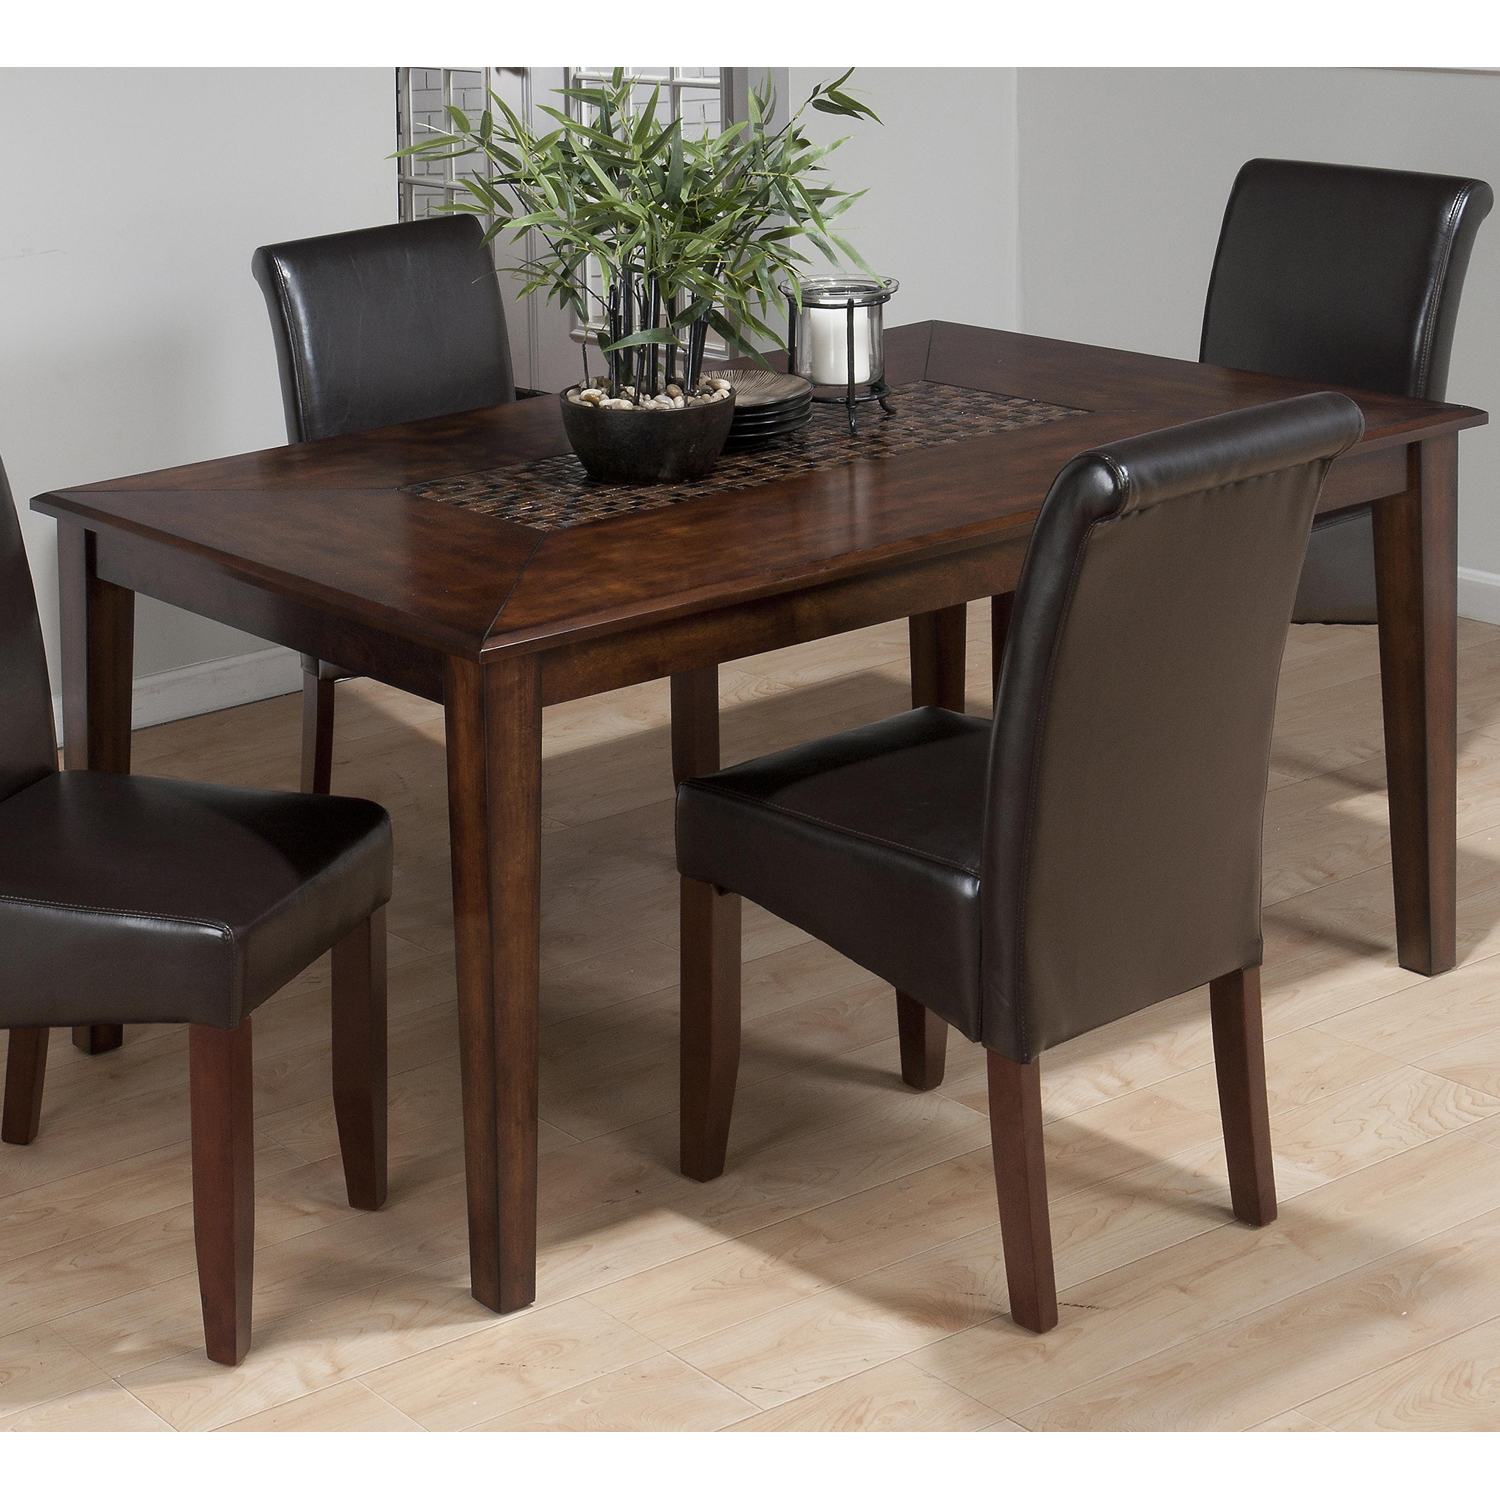 Baroque Standard Height Dining Table - Mosaic Inlay, Brown - JOFR-697-64